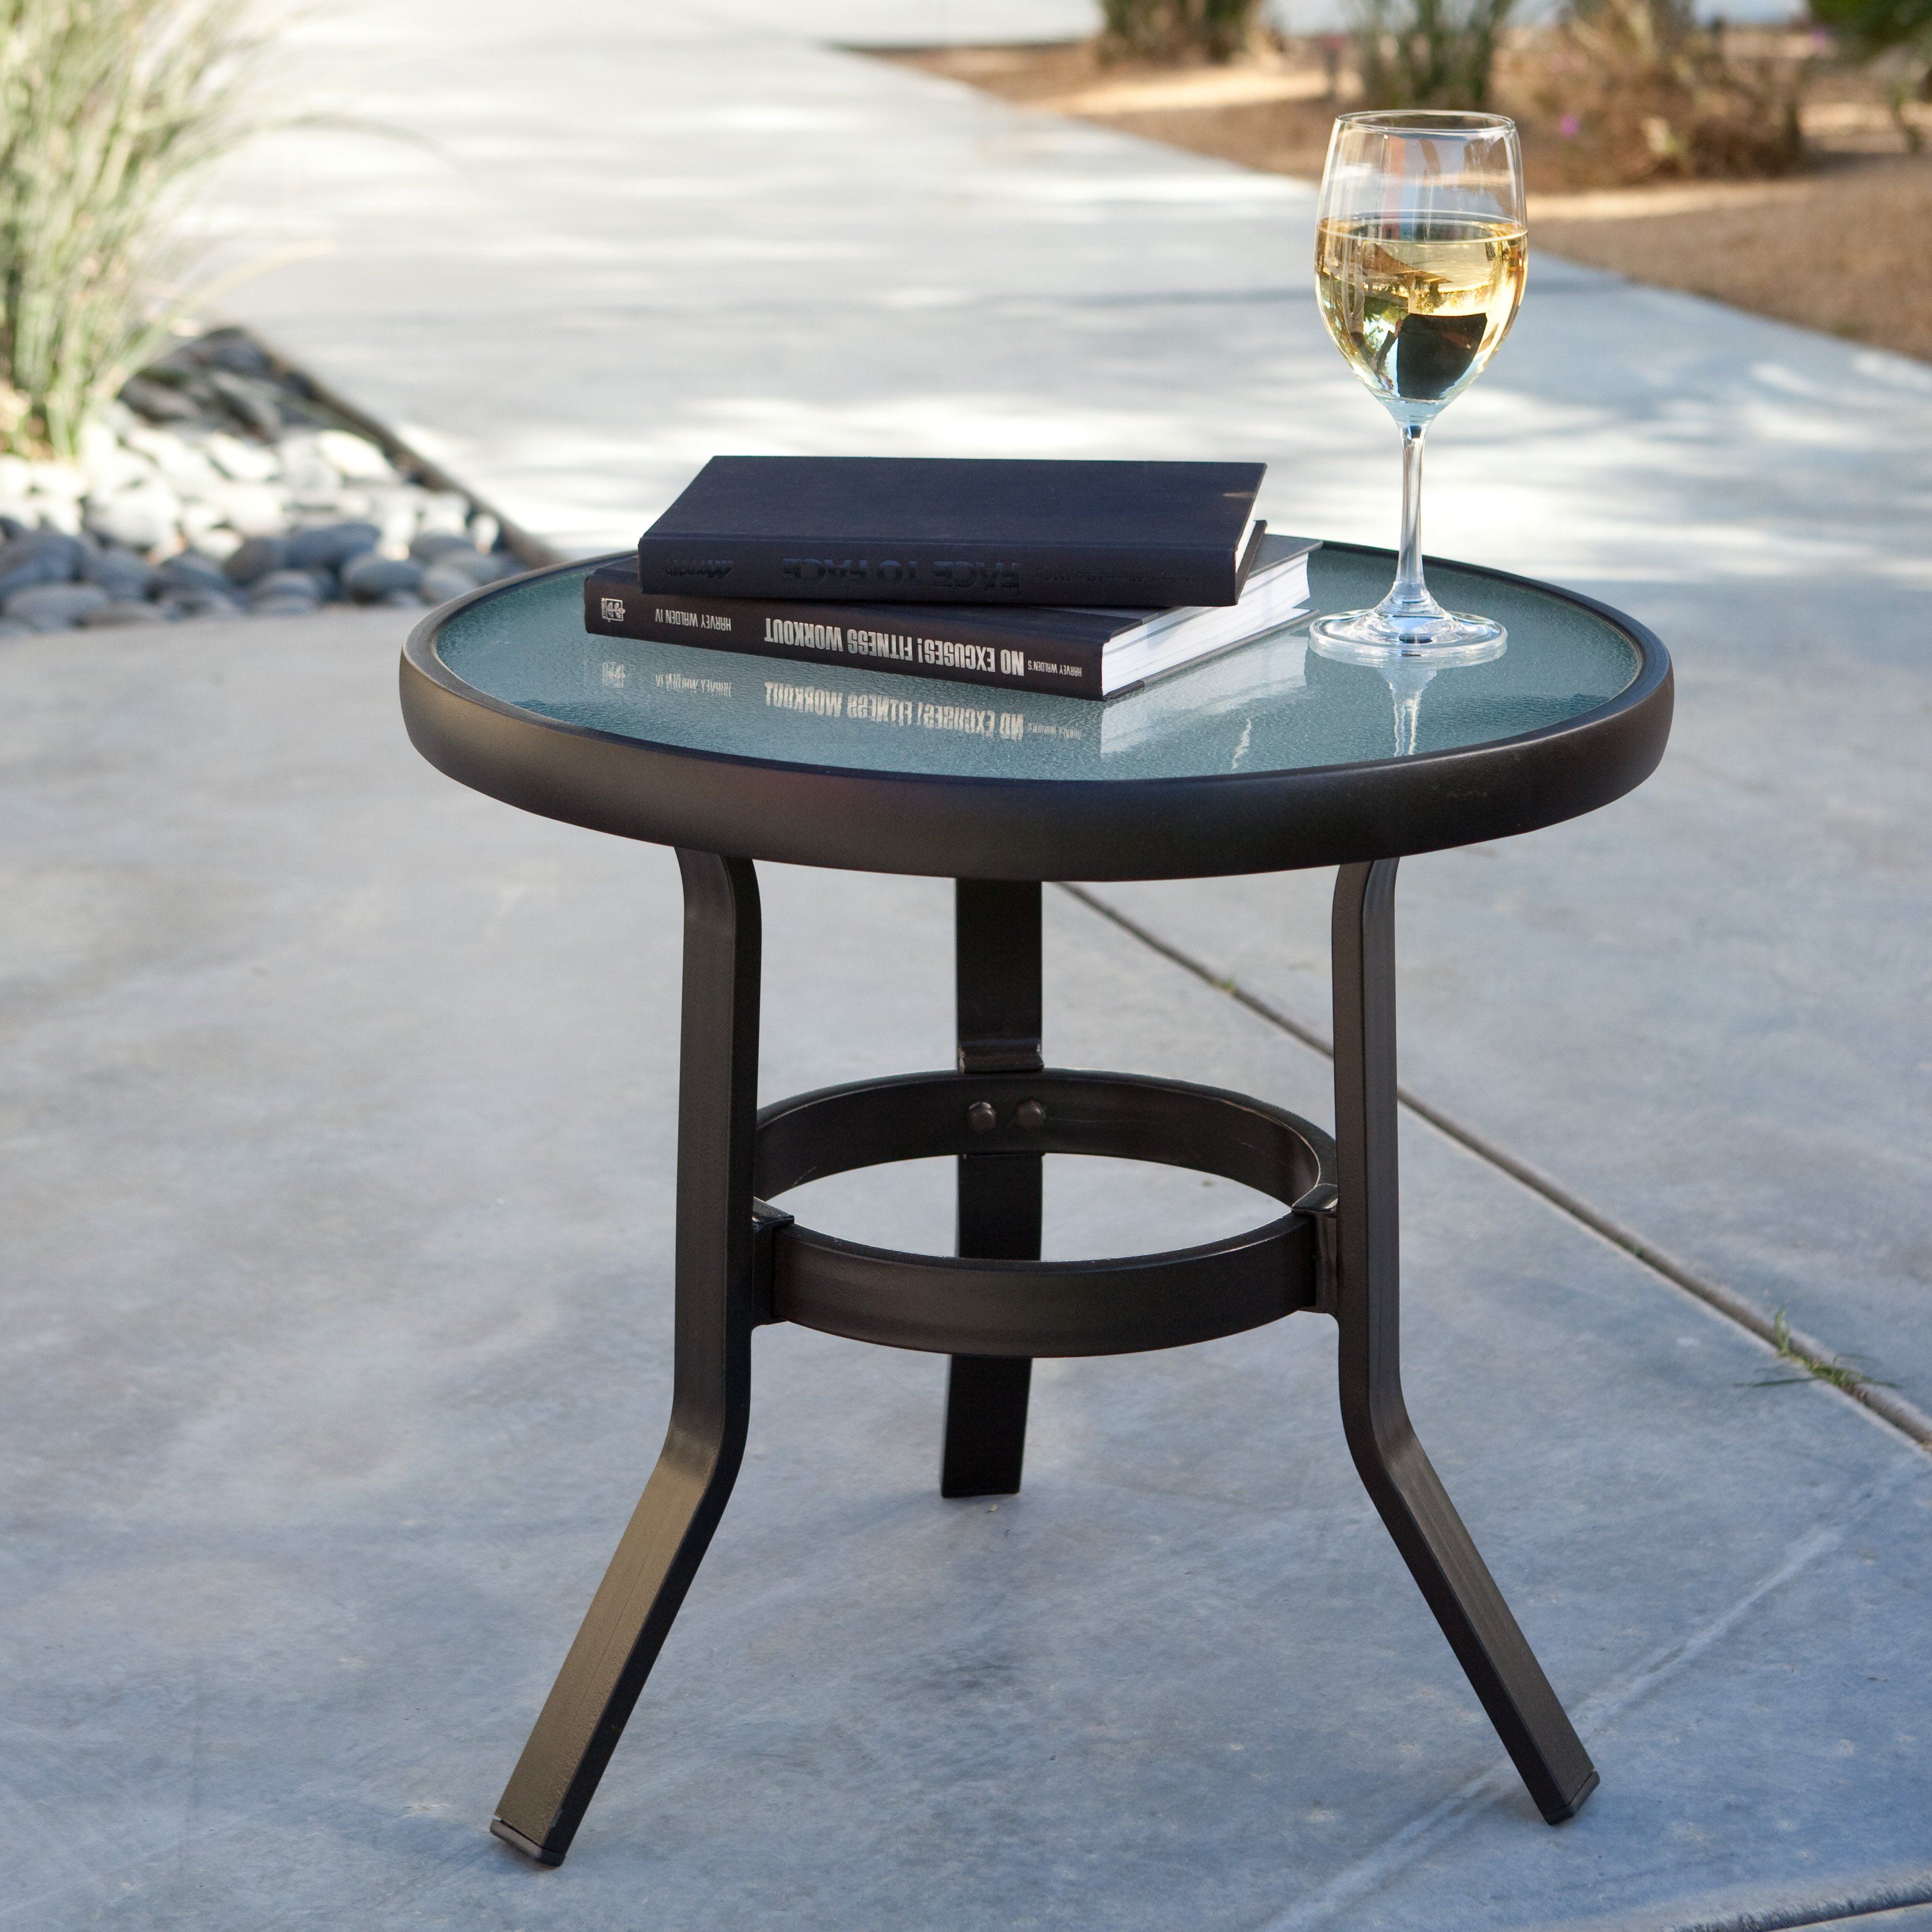 round patio side table outdoor front porch deck pool glass top end accent details knobs console behind sofa target living room interior design ethan allen furniture gold marble